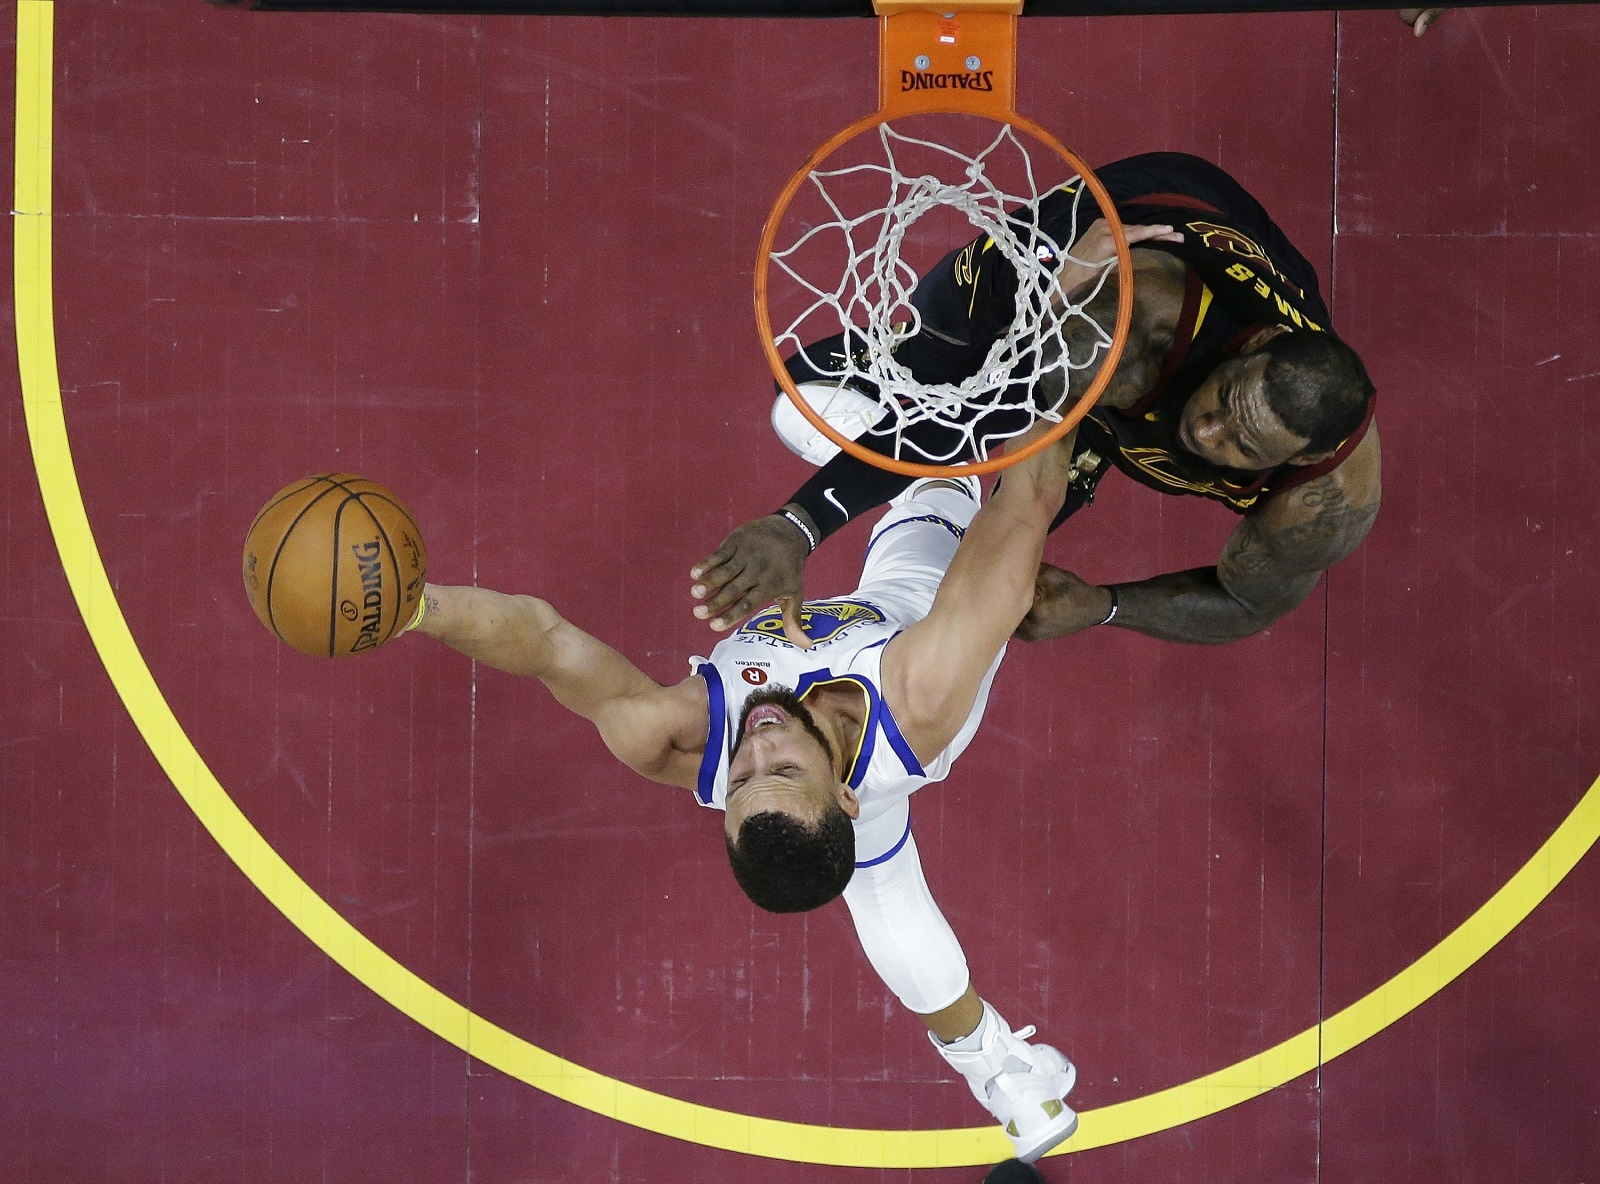 Golden State Warriors' Stephen Curry shoots against Cleveland Cavaliers' LeBron James during the second half of Game 4 of basketball's NBA Finals on June 8, 2018, in Cleveland. (AP Photo/Carlos Osorio)